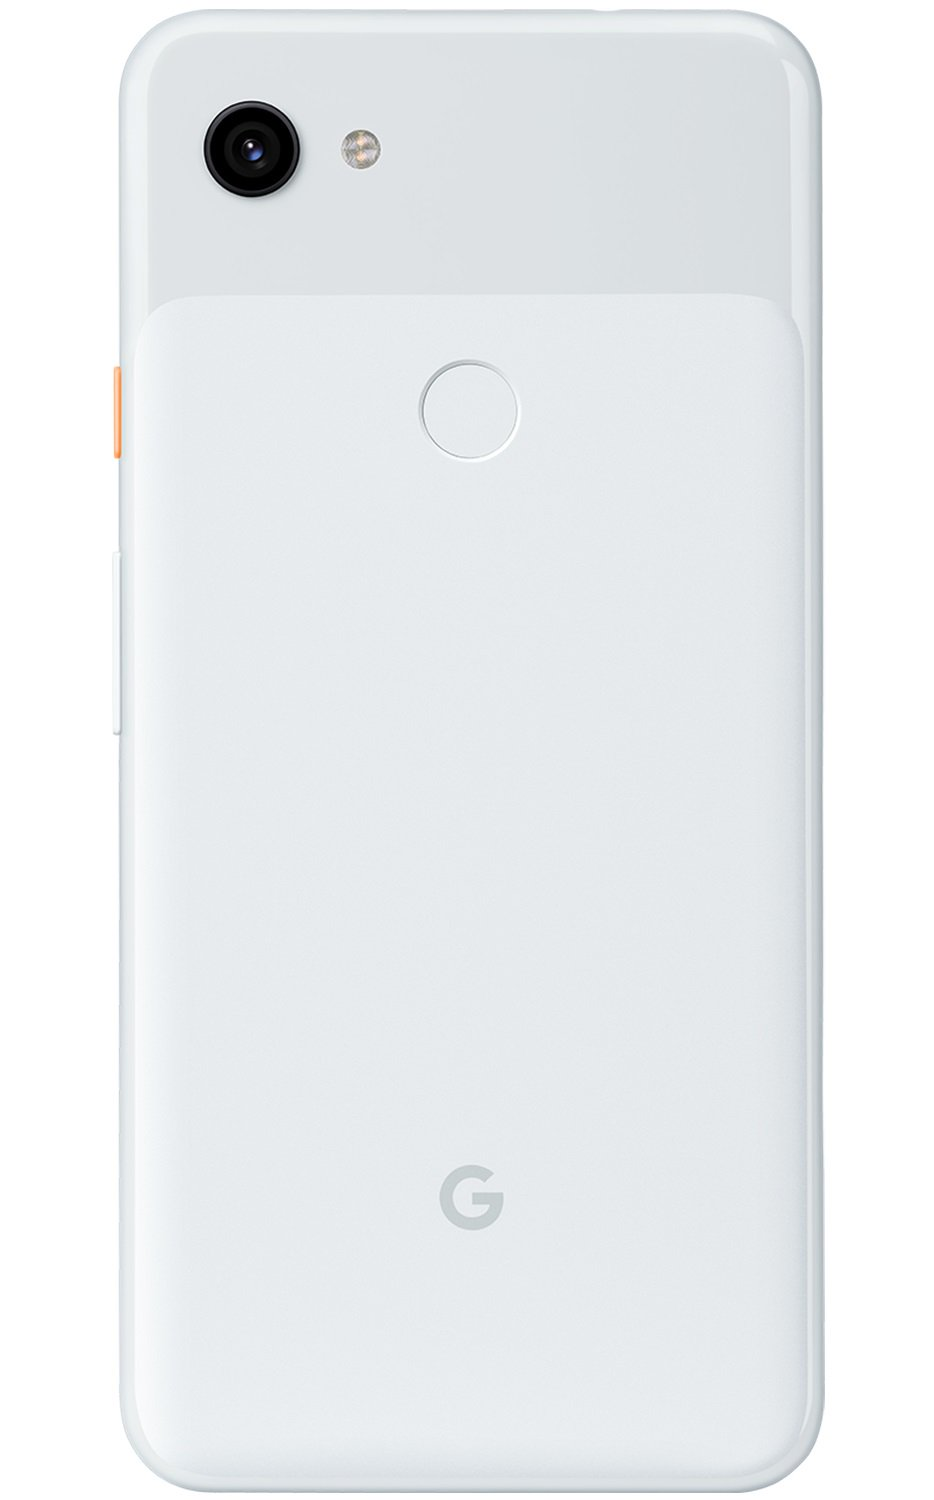 Google-Pixel-3a-XL-Clearly-White